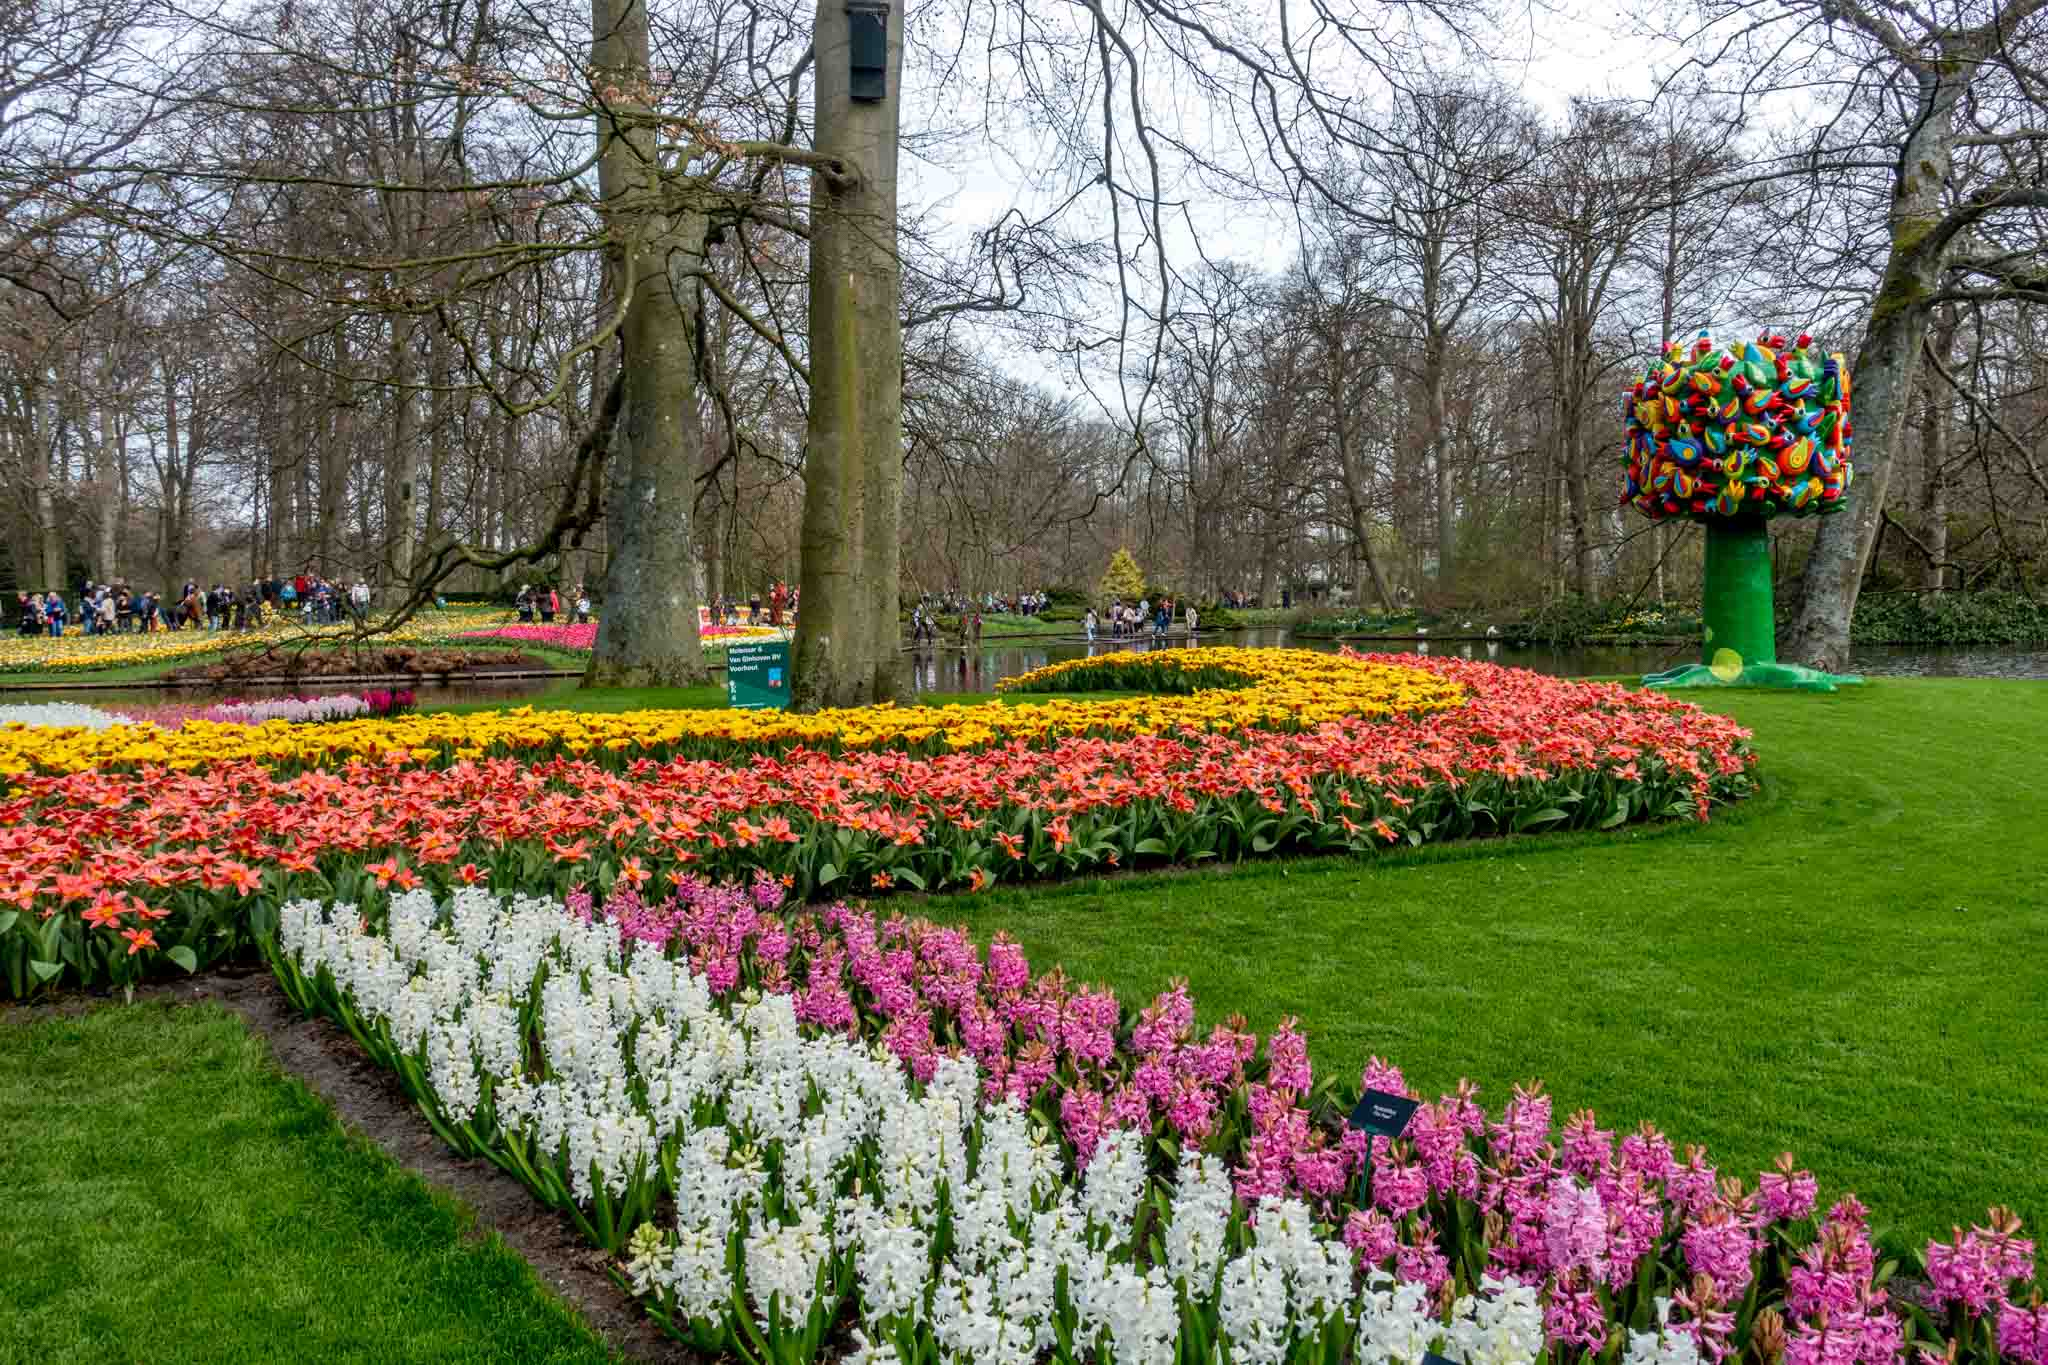 Rows of hyacinths and tulips beside a large, multicolored sculpture